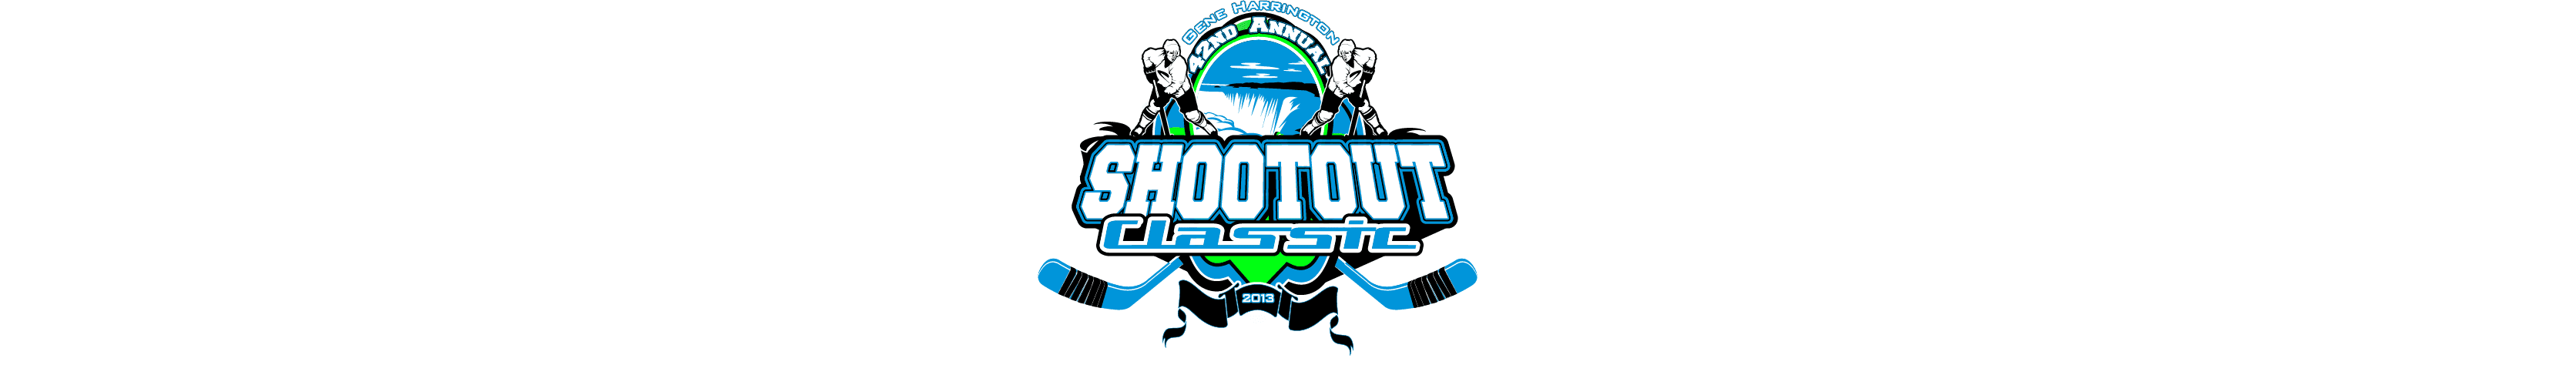 VECTOR LOGO DESIGN FOR PRINT SHOOTOUT CLASSIC HOCKEY EVENT